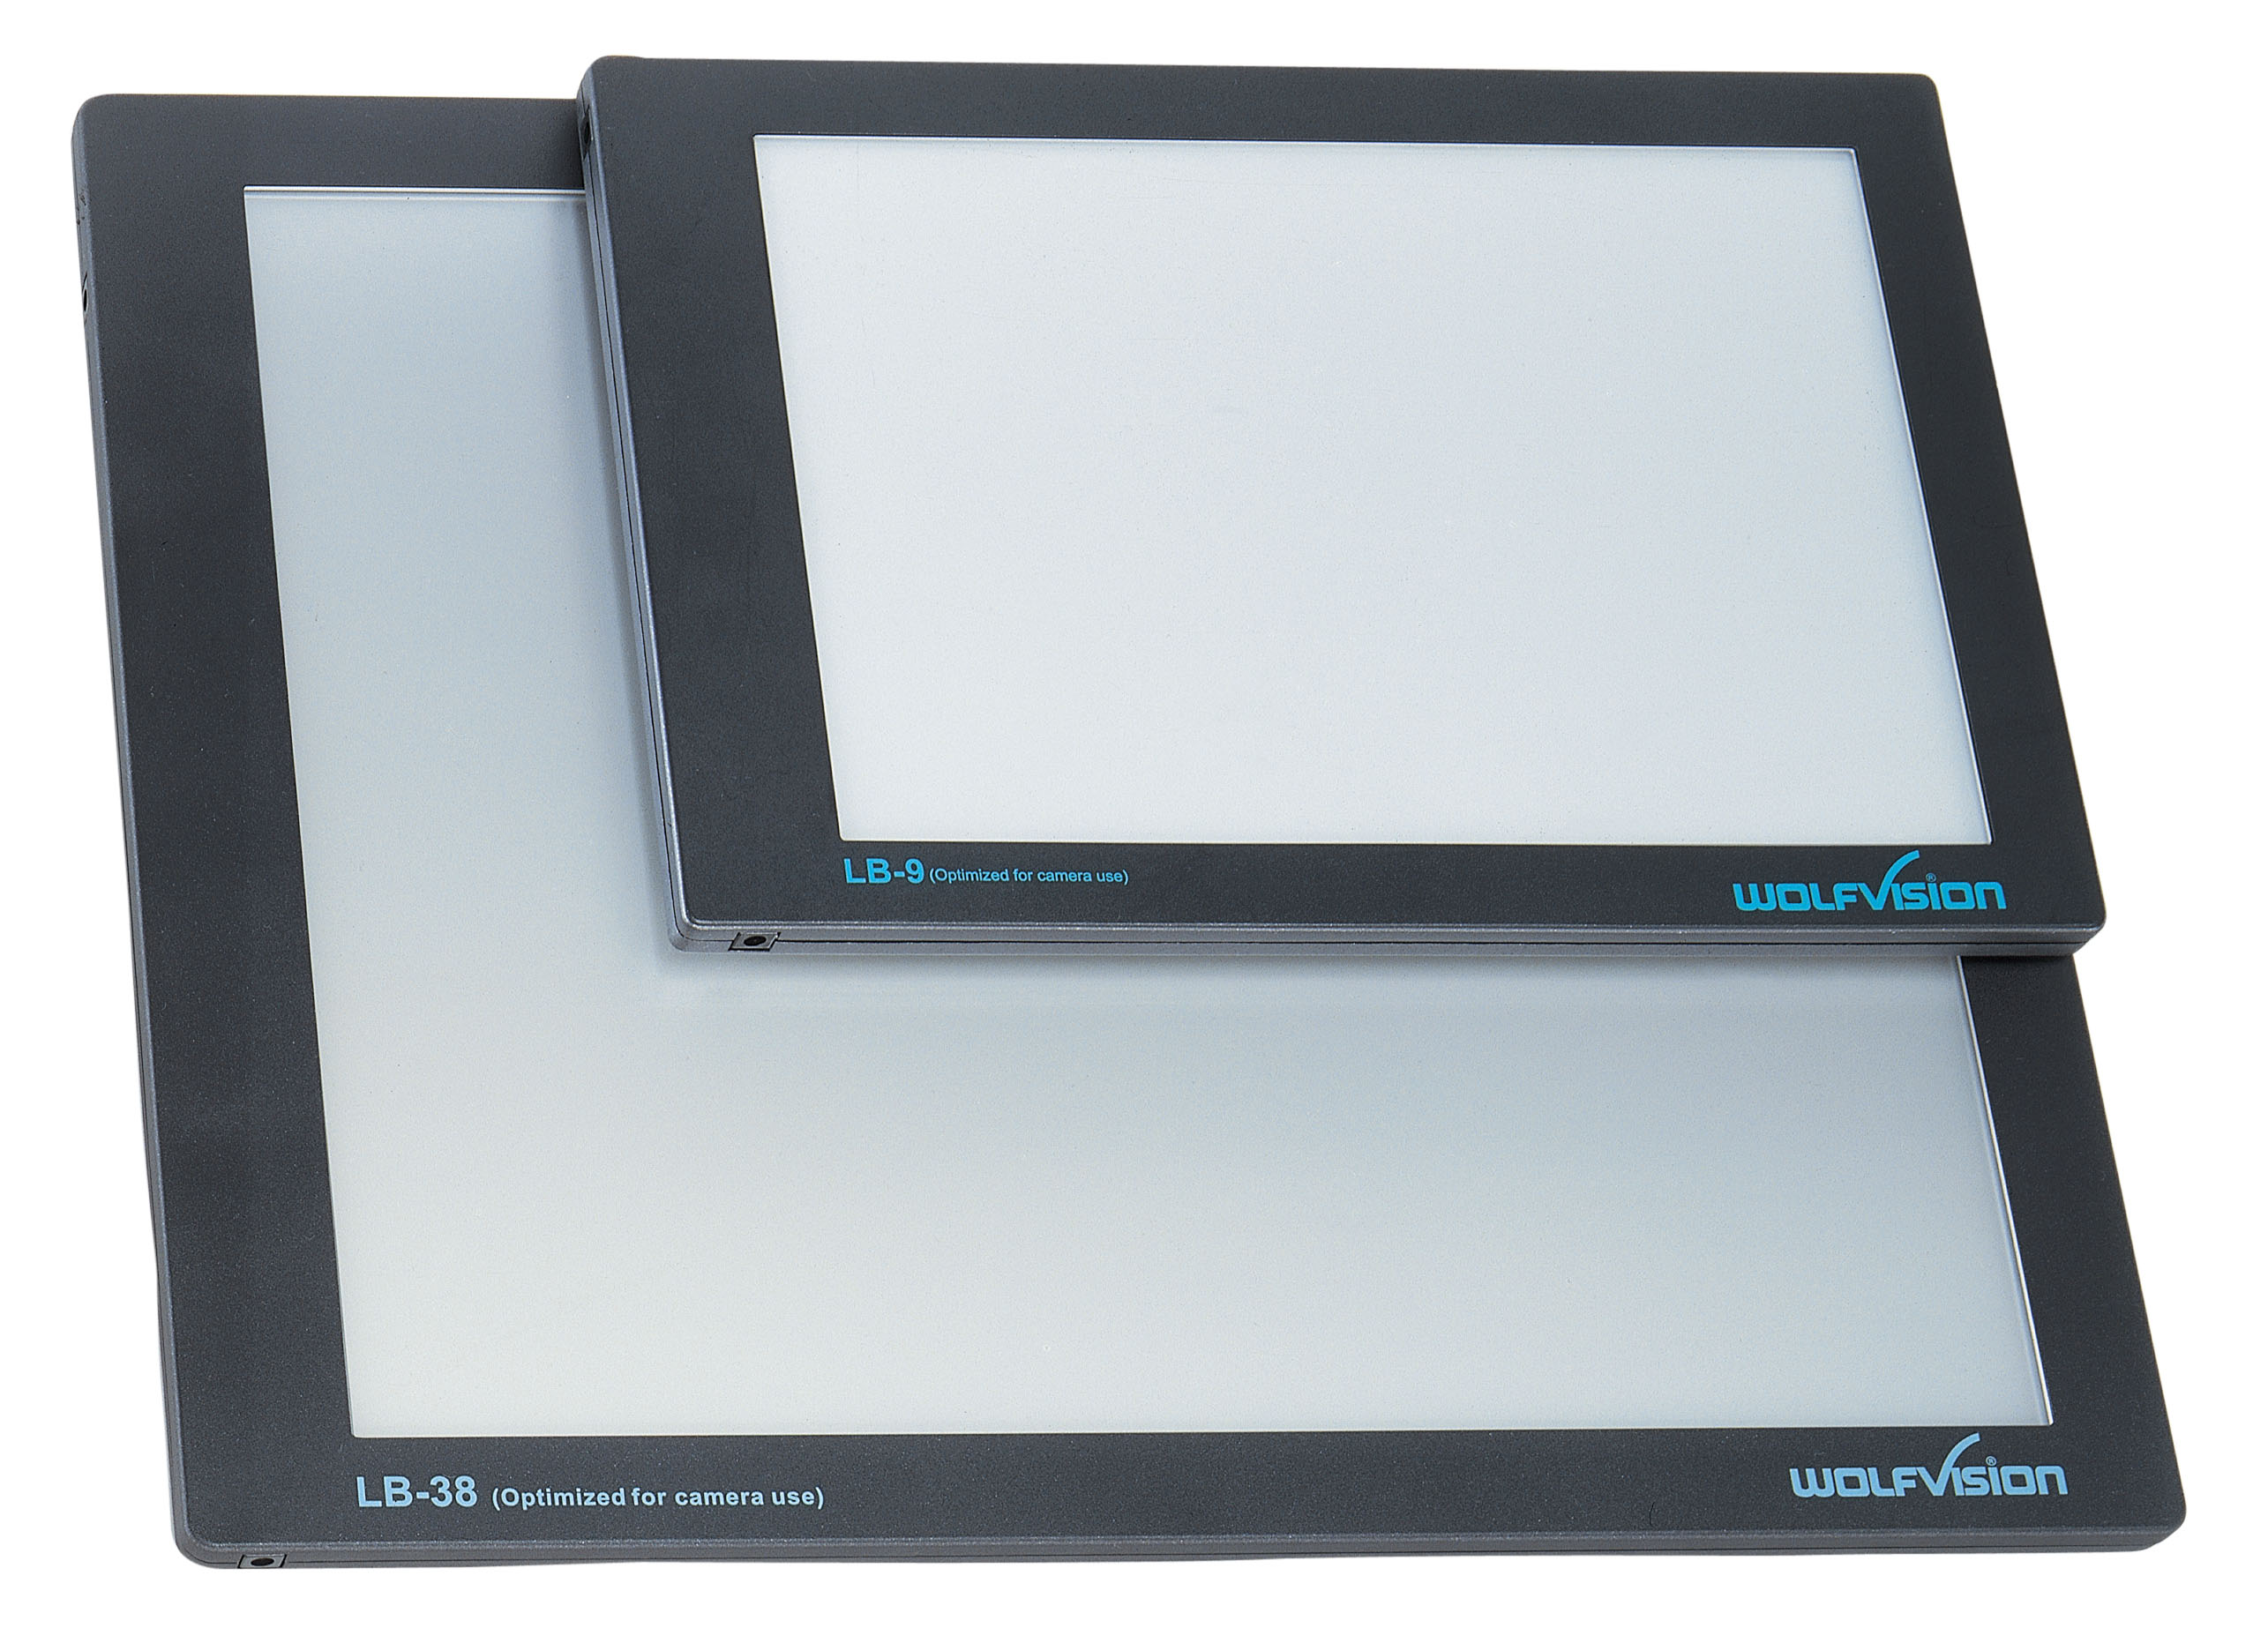 WolfVision lightboxes